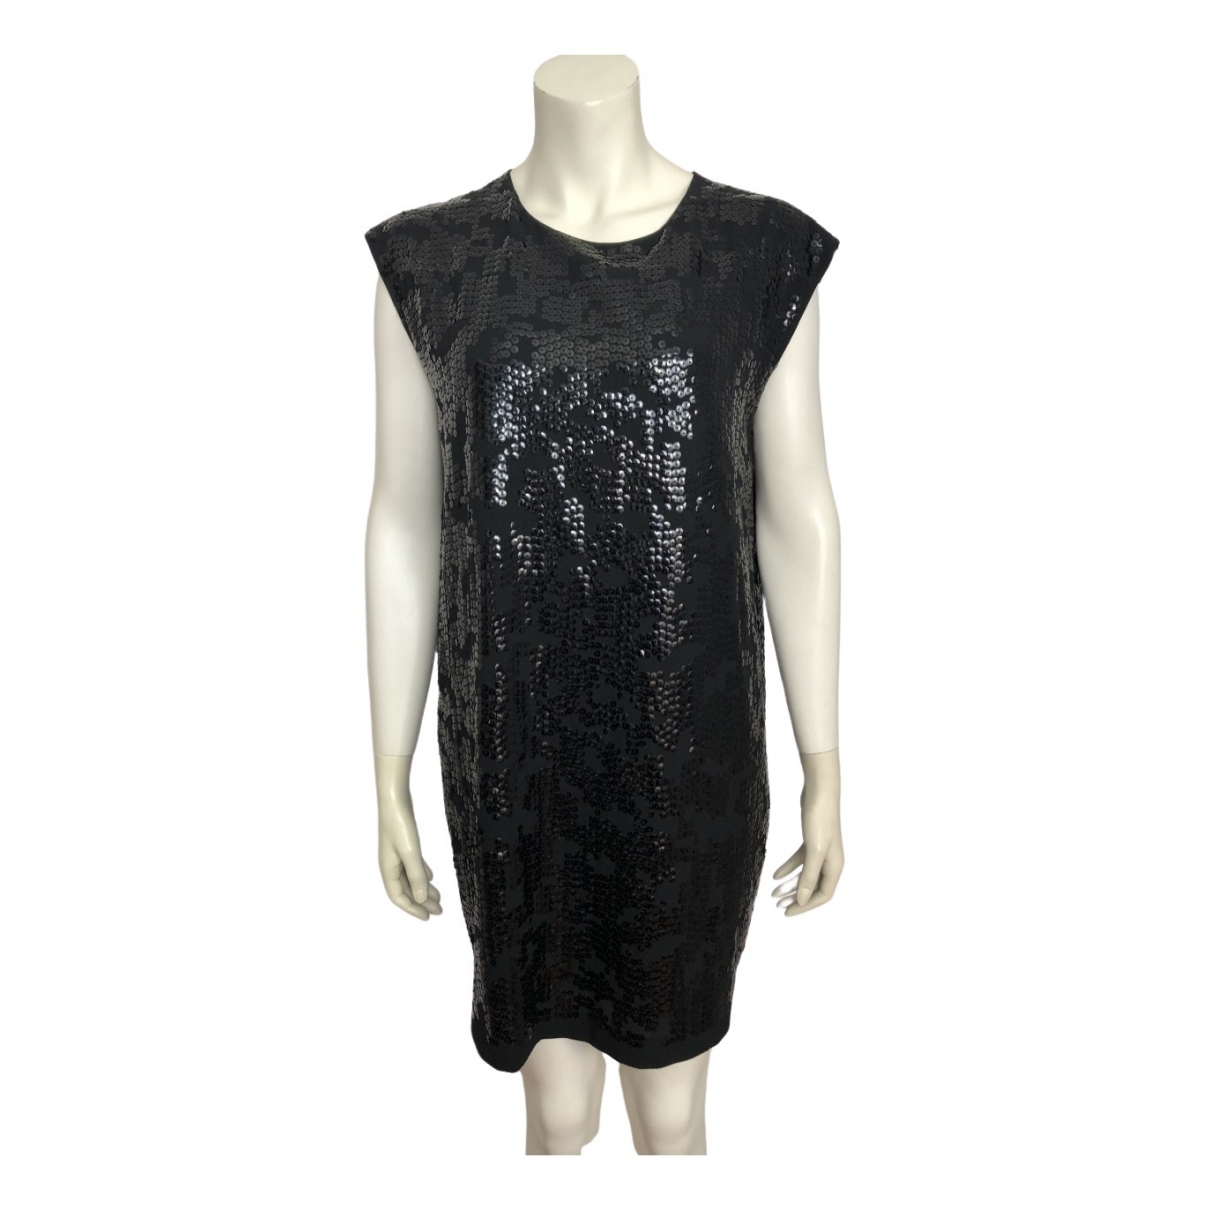 Les Petites \N Black dress for Women L International